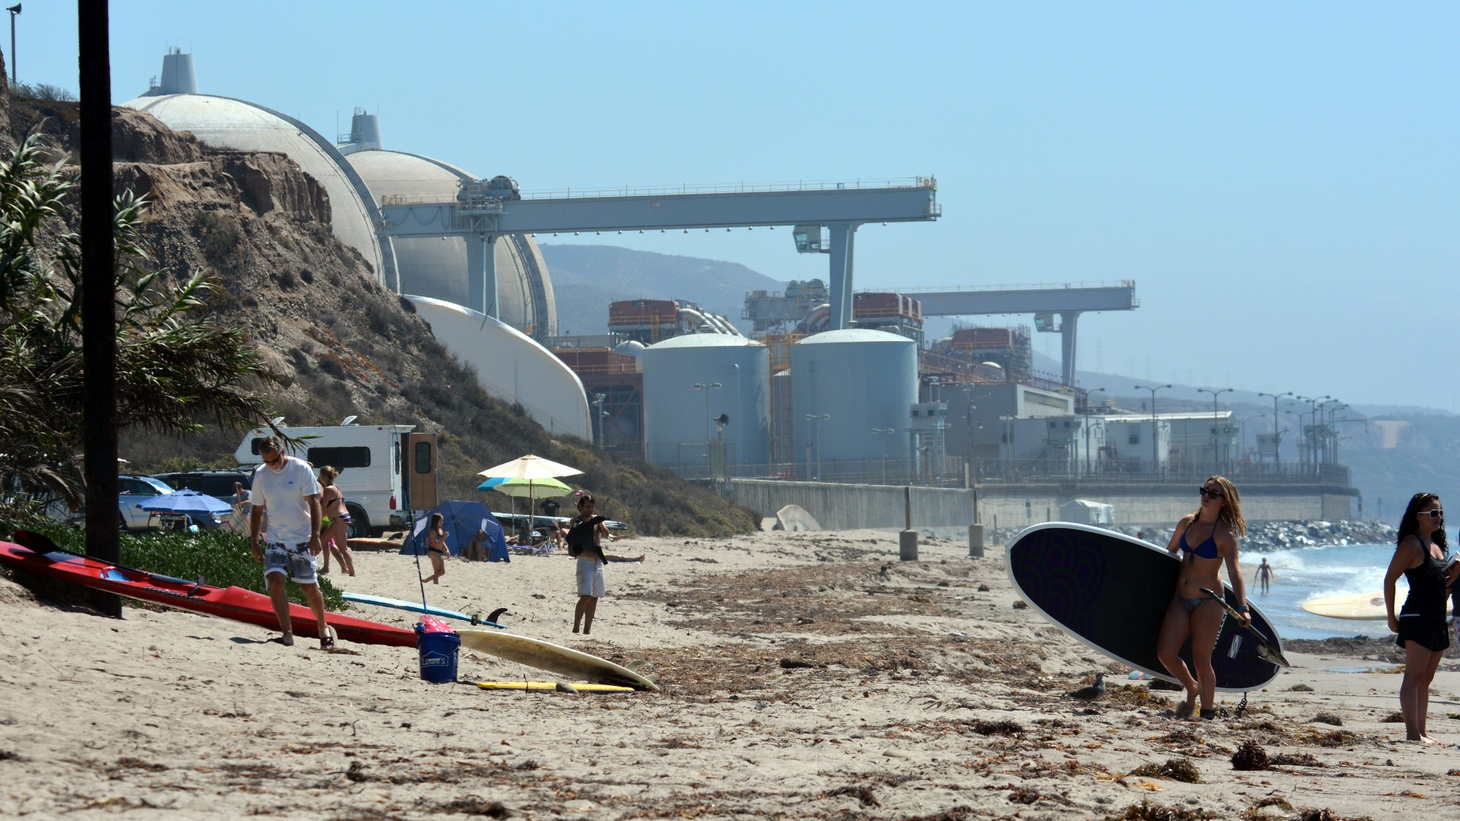 The San Onofre Nuclear Generating Station near San Clemente